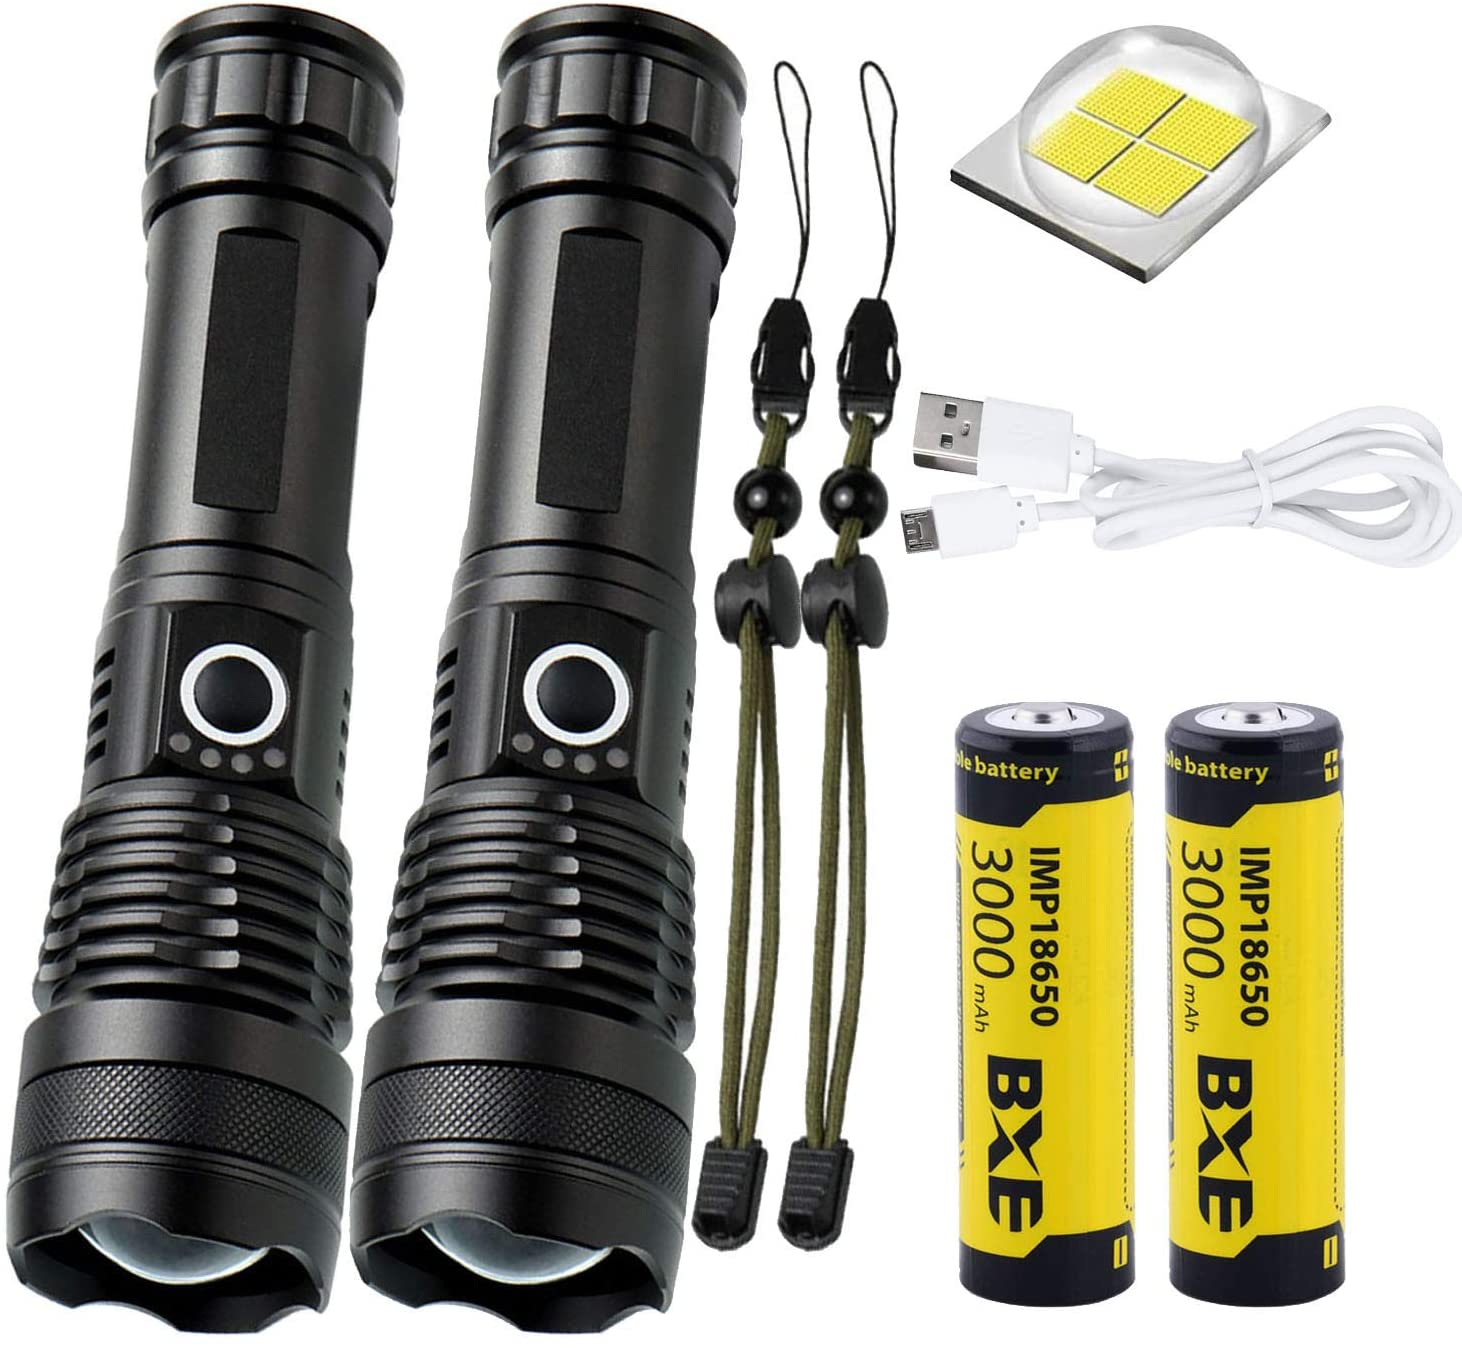 P50 2 LED Tactical Flashlights High Lumens,5 Modes,Rechargeable-5000 Lumens,Zoomable,Waterproof,Power Display,Handheld Light For Camping/Hiking/Running With 2 Batteries